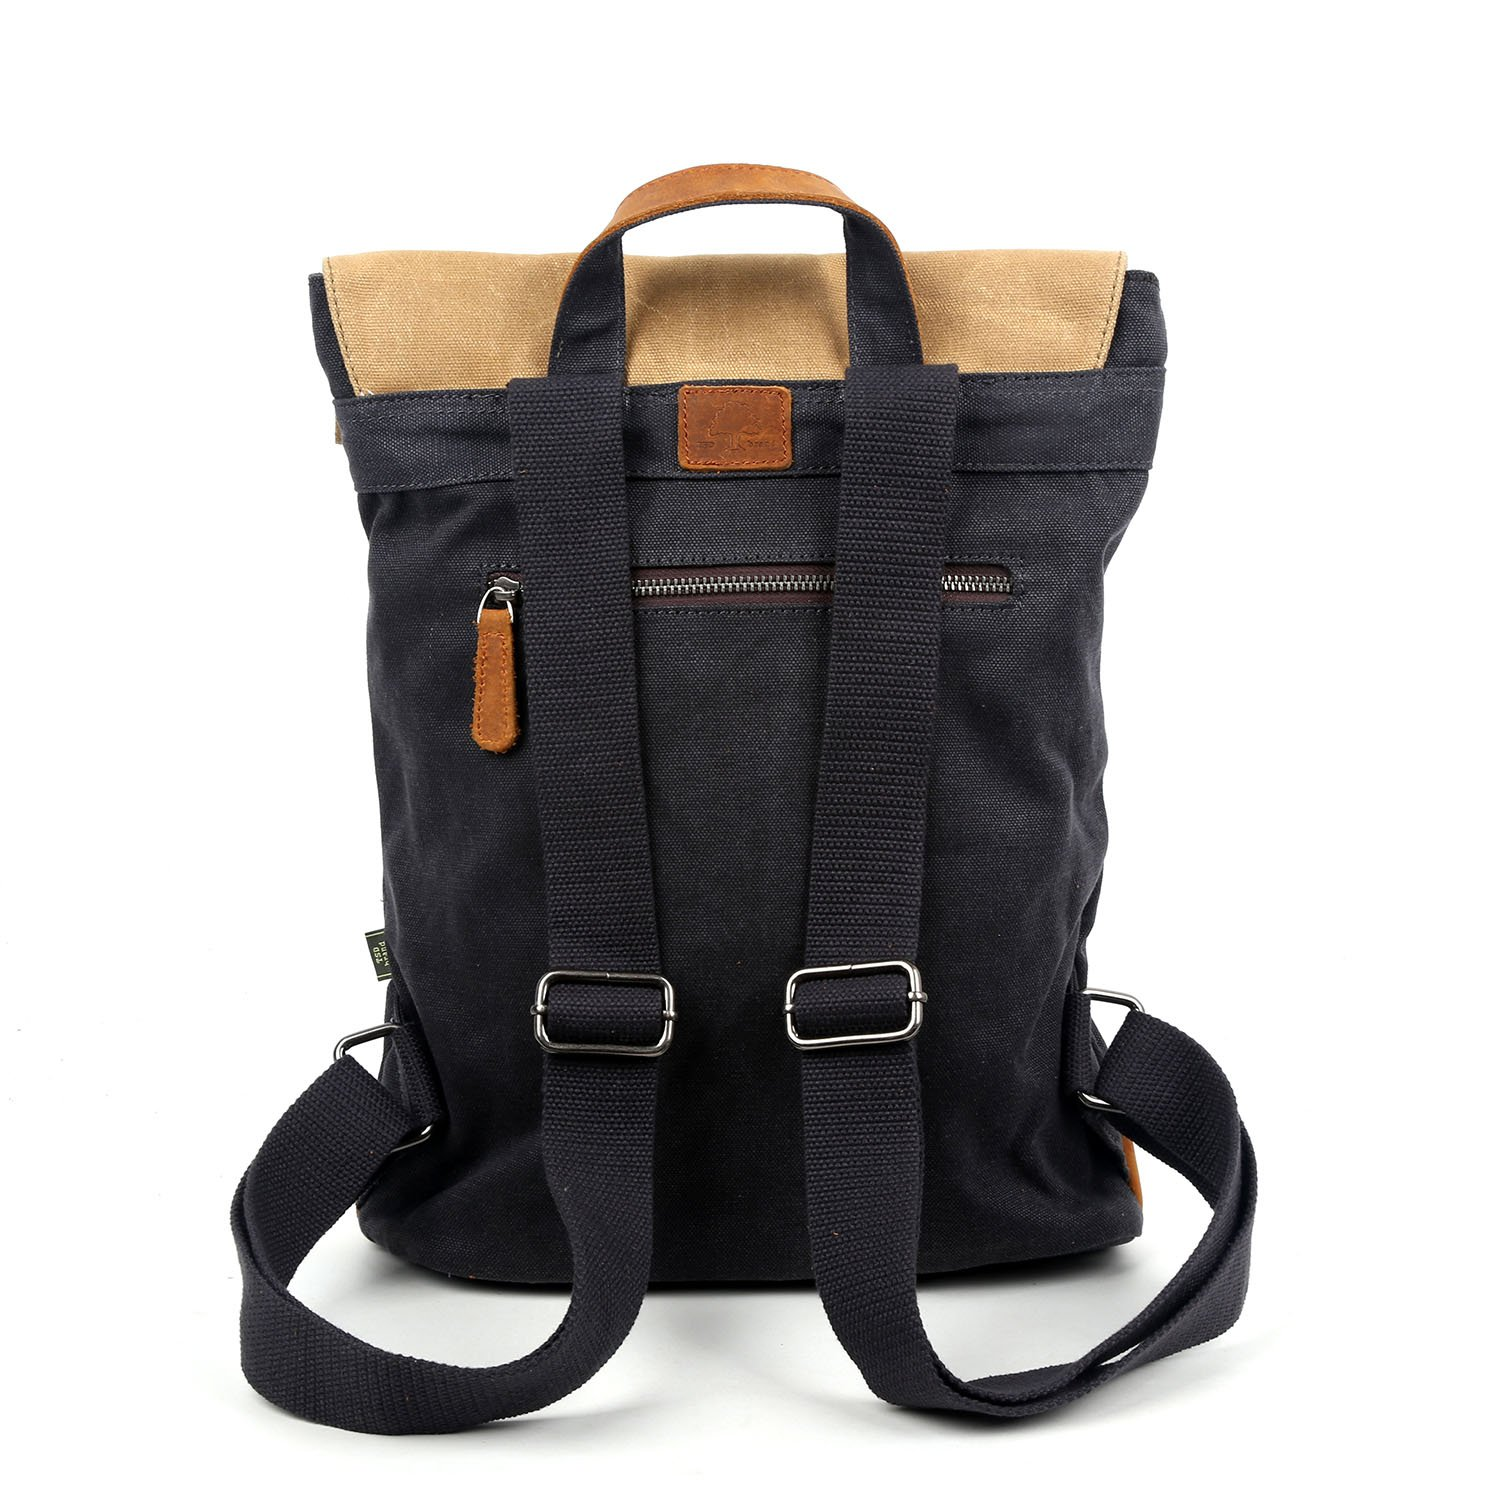 Travel Log Compass Backpack Genuine Canvas and Leather Bag Navy